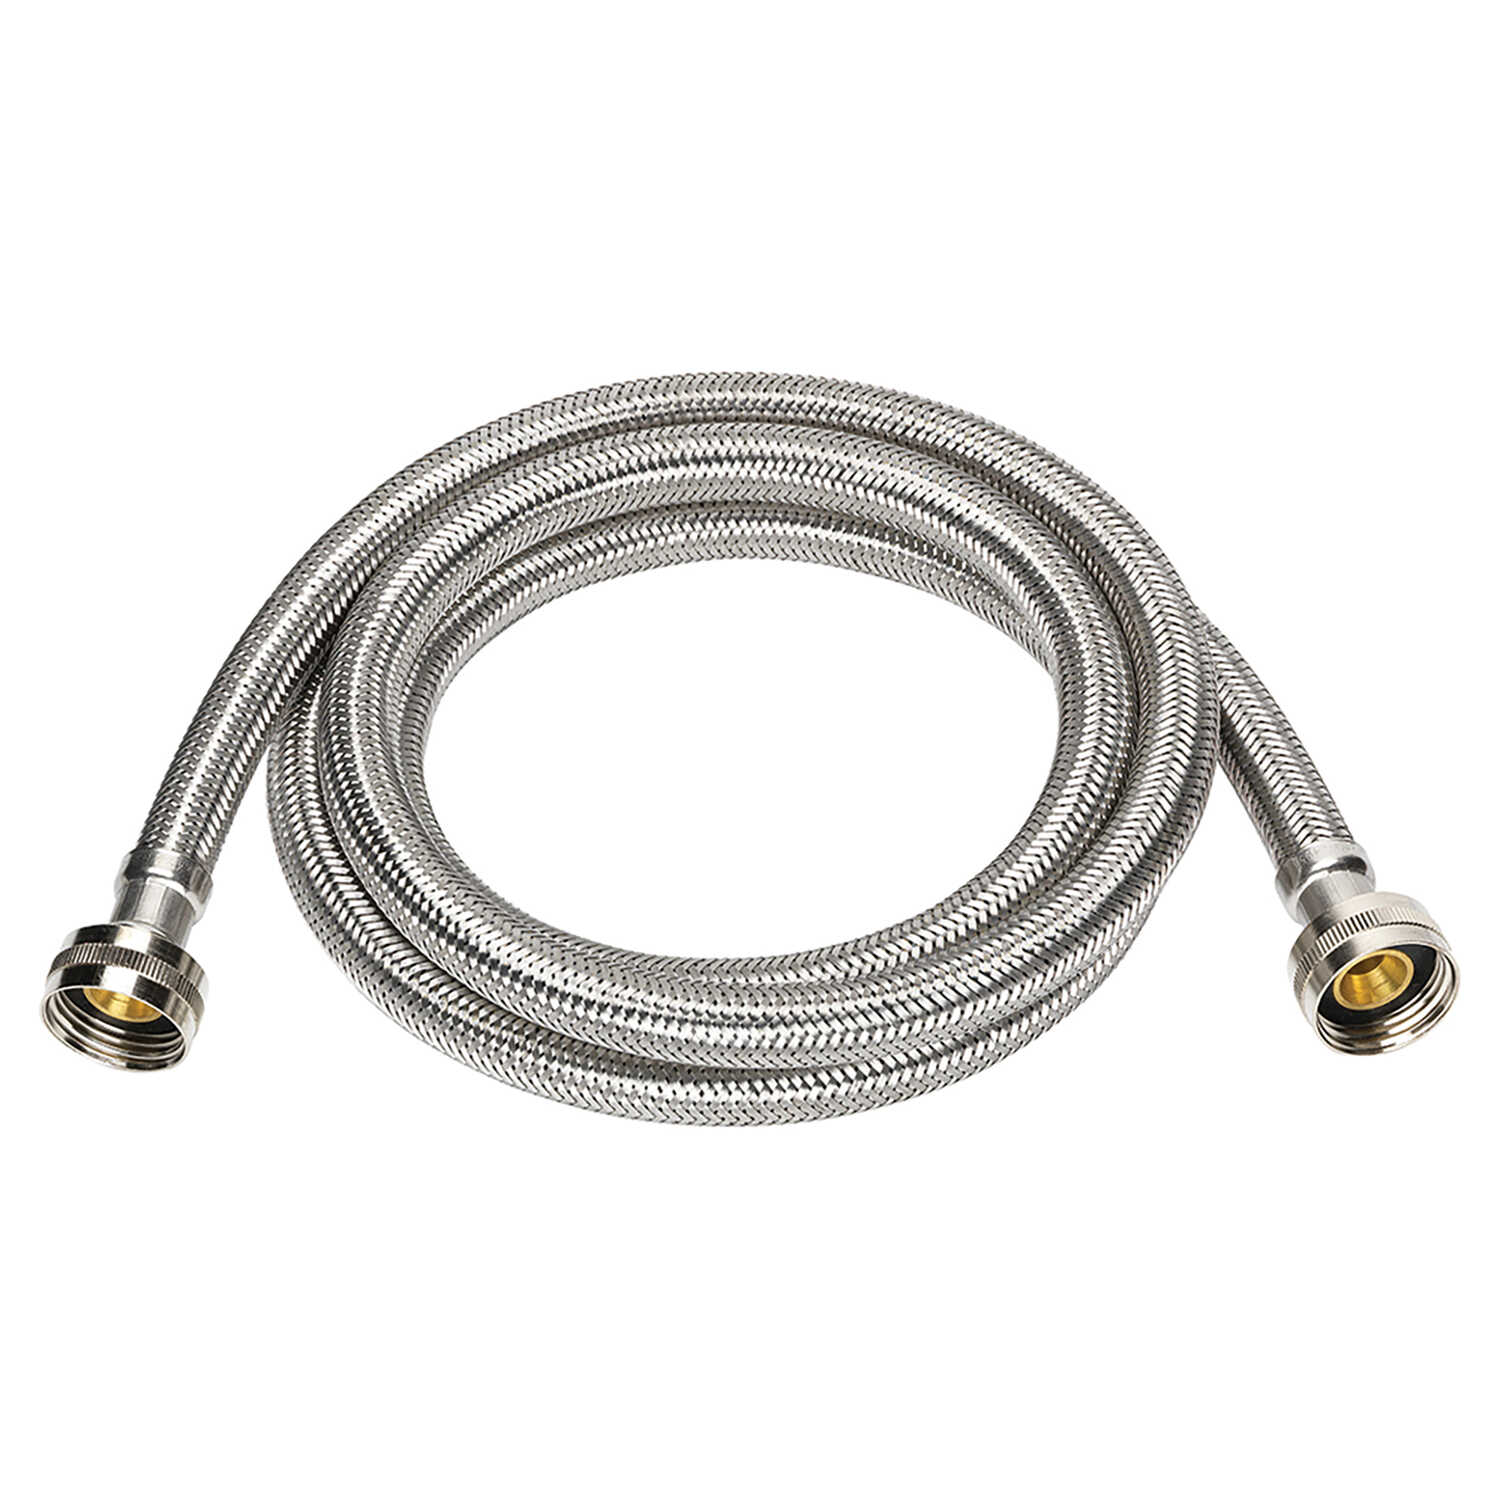 Ace  3/4 in. FIP   x 3/4 in. Dia. FIP  Stainless Steel  4 ft. Supply Line